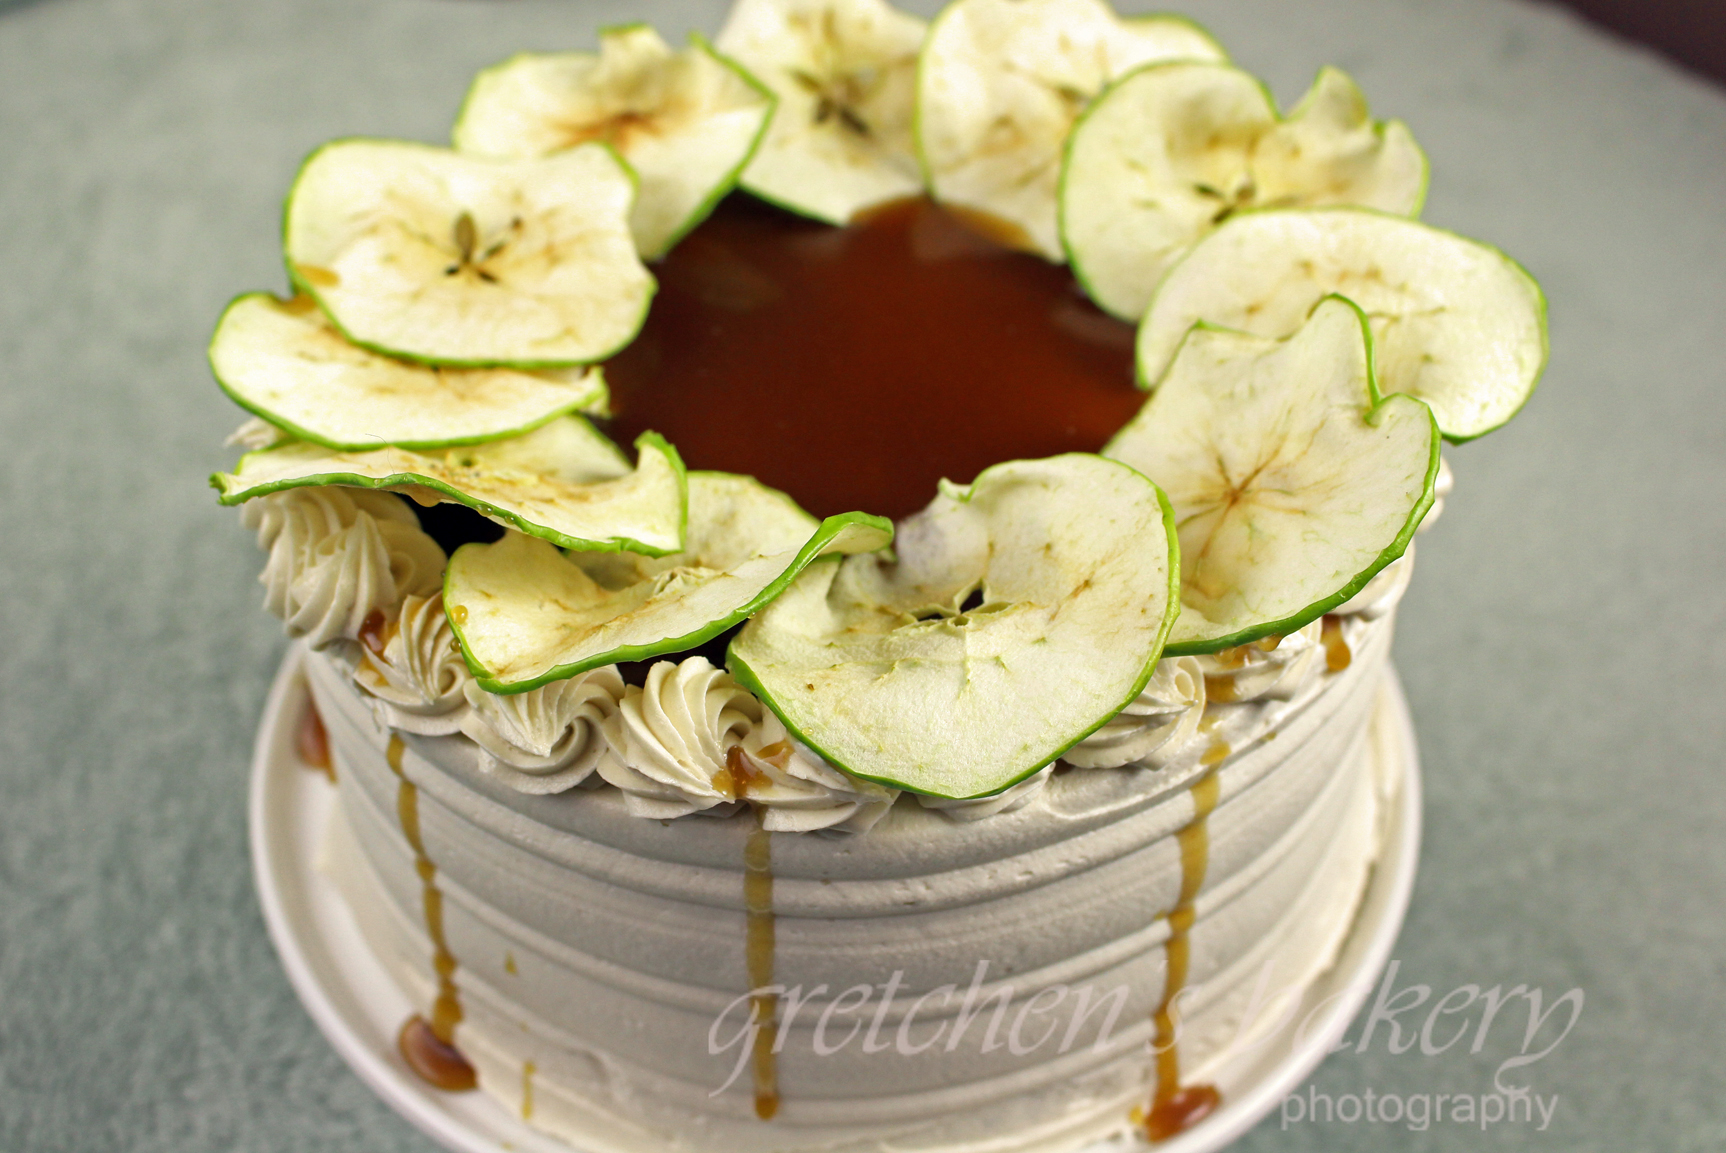 Vegan Caramel Apple Cake